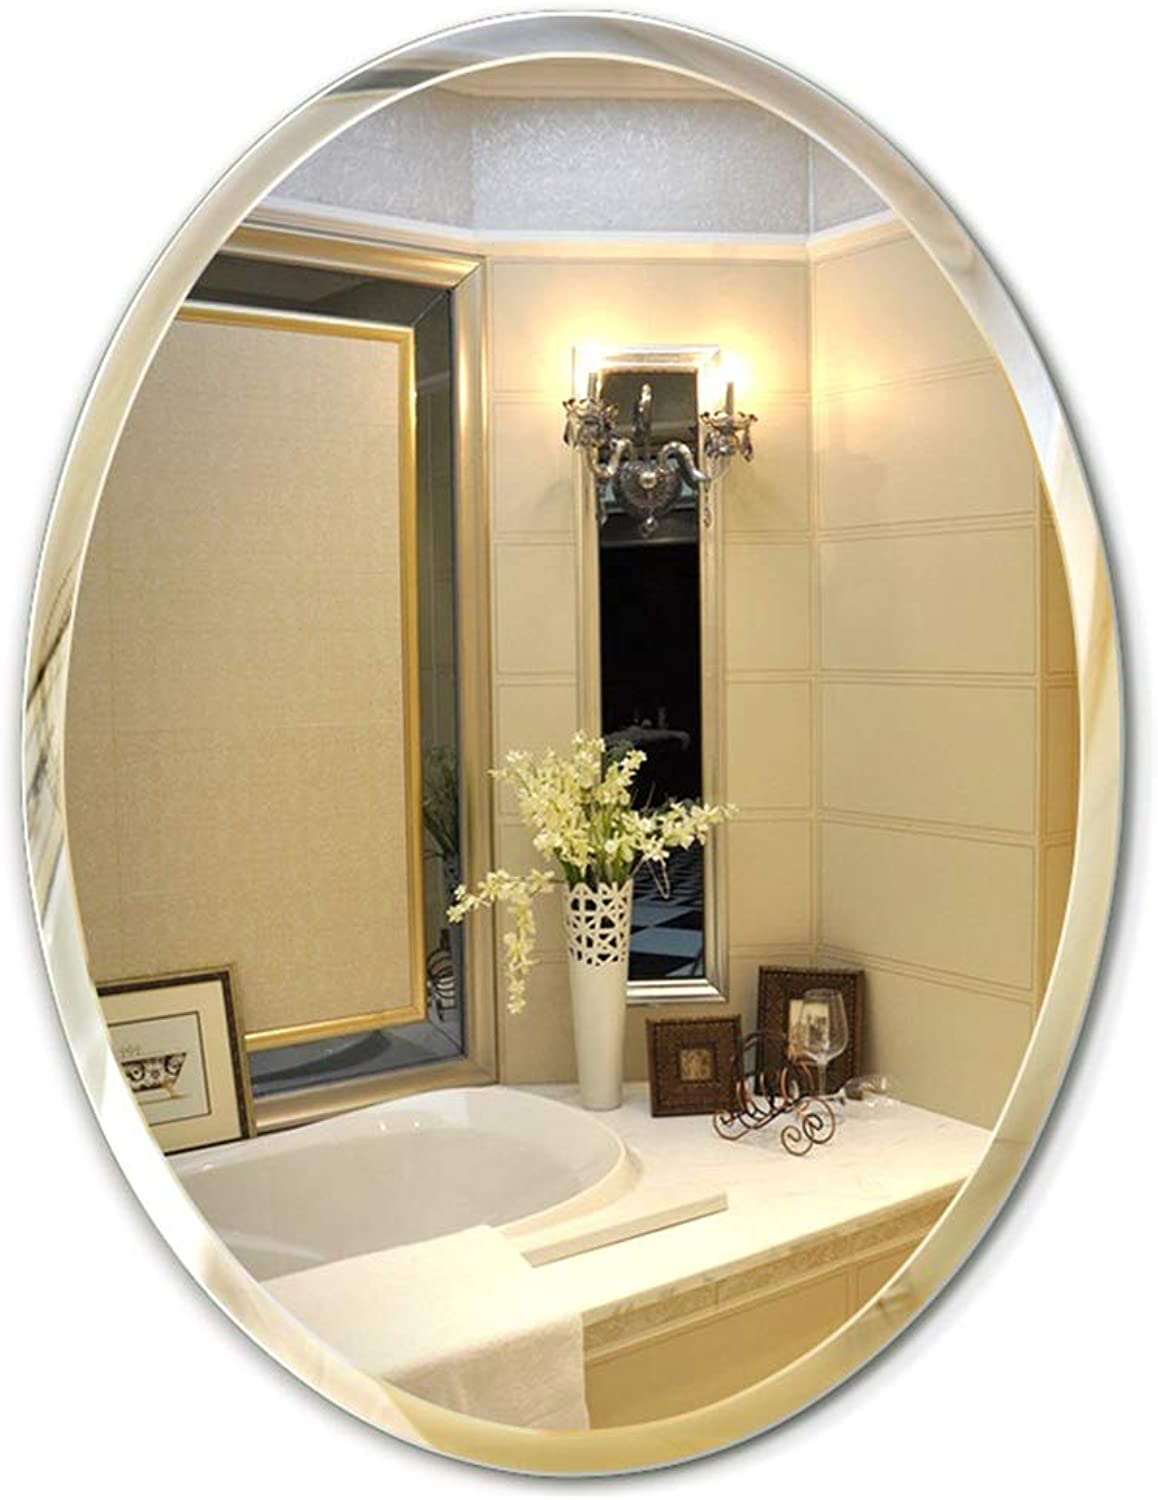 YANZHEN Mirror Wall-Mounted Frameless Ultra-Clear Bathroom Hypotenuse Oval Simple and Stylish Silver Mirror, 2 Styles 3 Sizes (color   5MM Thickness Silver, Size   45x60cm)